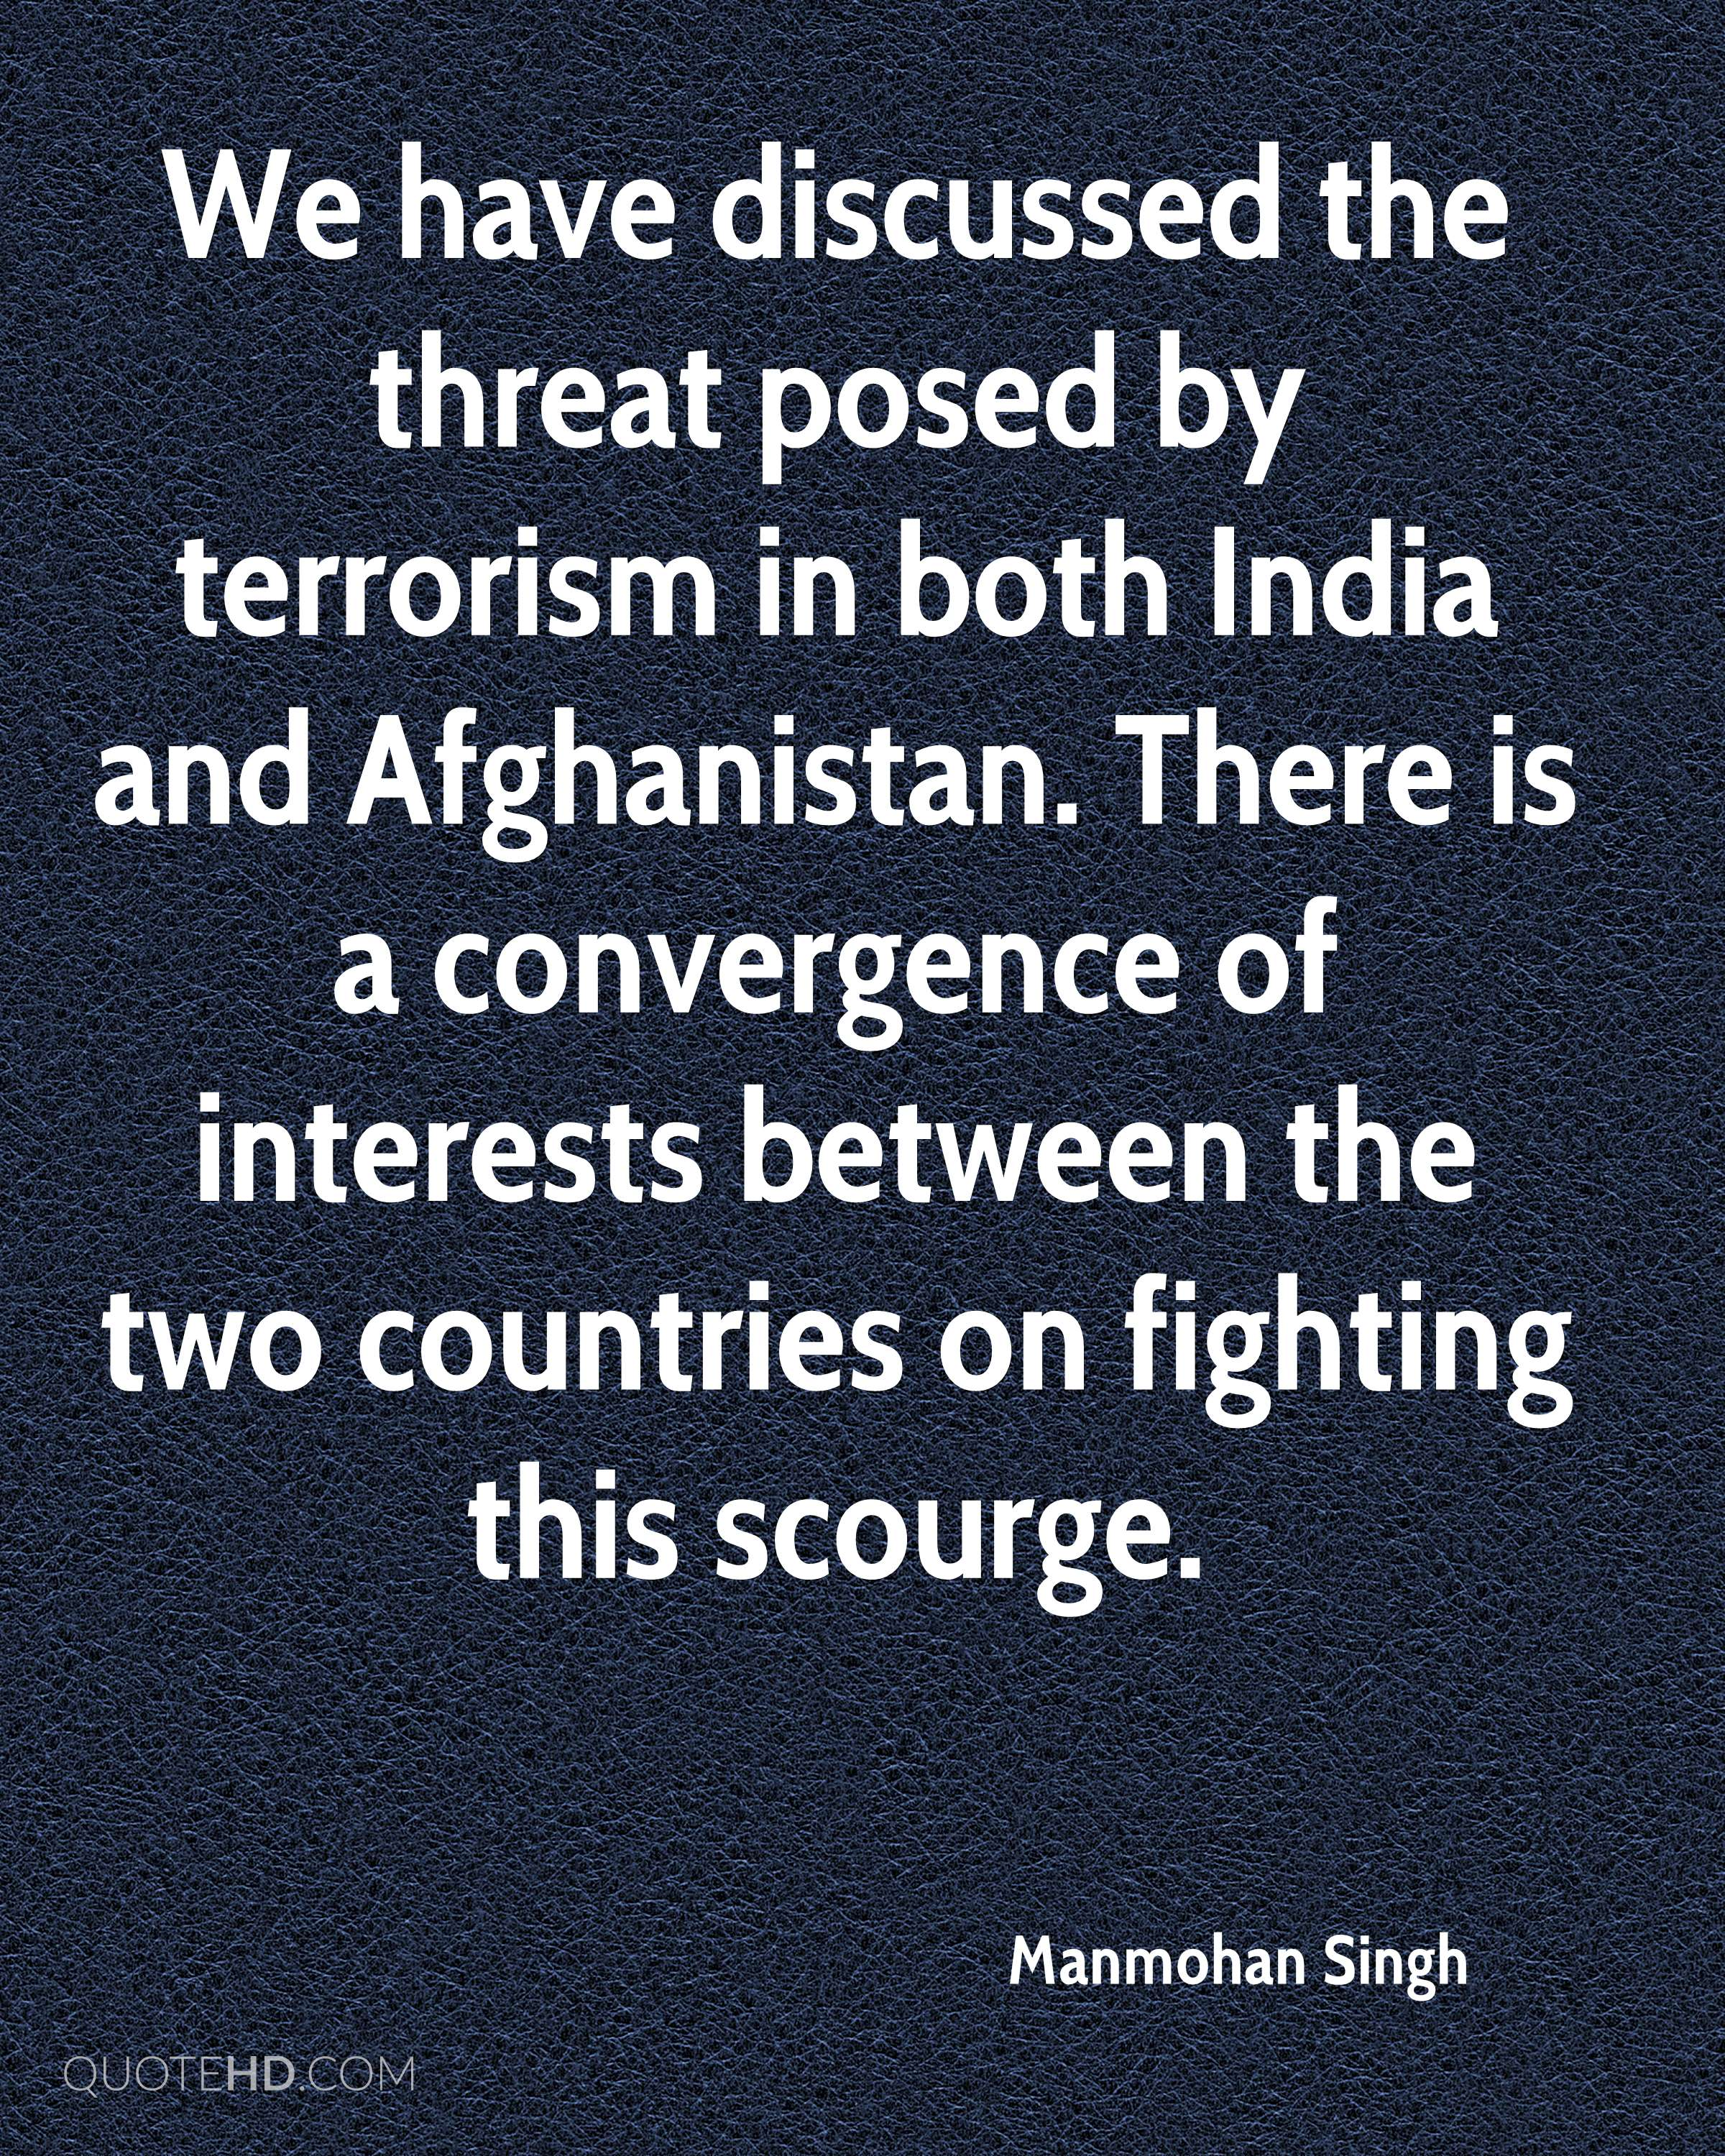 We have discussed the threat posed by terrorism in both India and Afghanistan. There is a convergence of interests between the two countries on fighting this scourge.